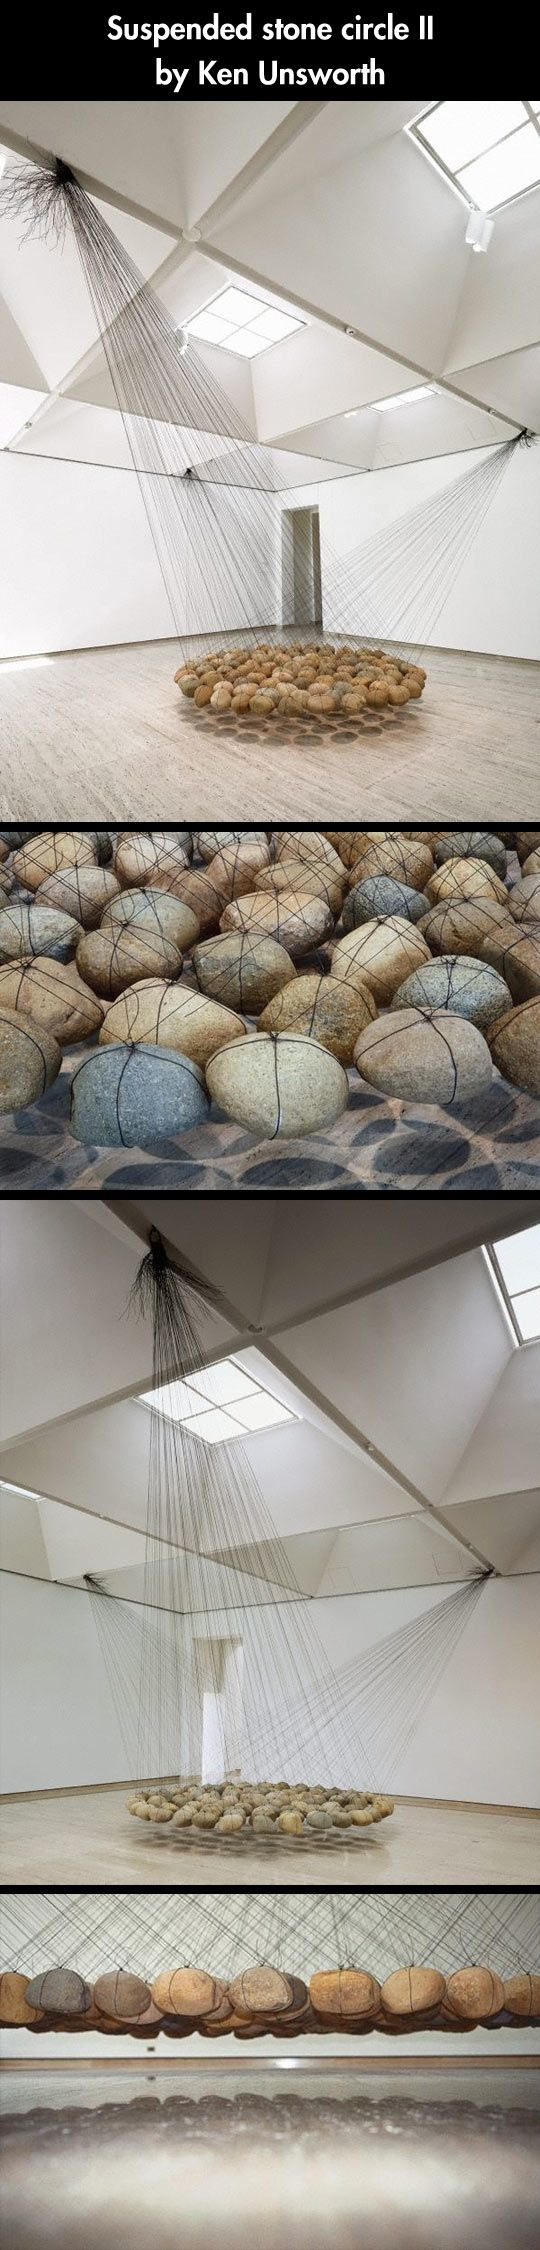 "One of my favourite pieces. ""Suspended stone circle II"", by Ken Unsworth. 130 round river stones, each weighing around 20 kilos and suspended by tensed-up wires. I had the luck of seeing this piece at the Art Gallery of New South Wales."